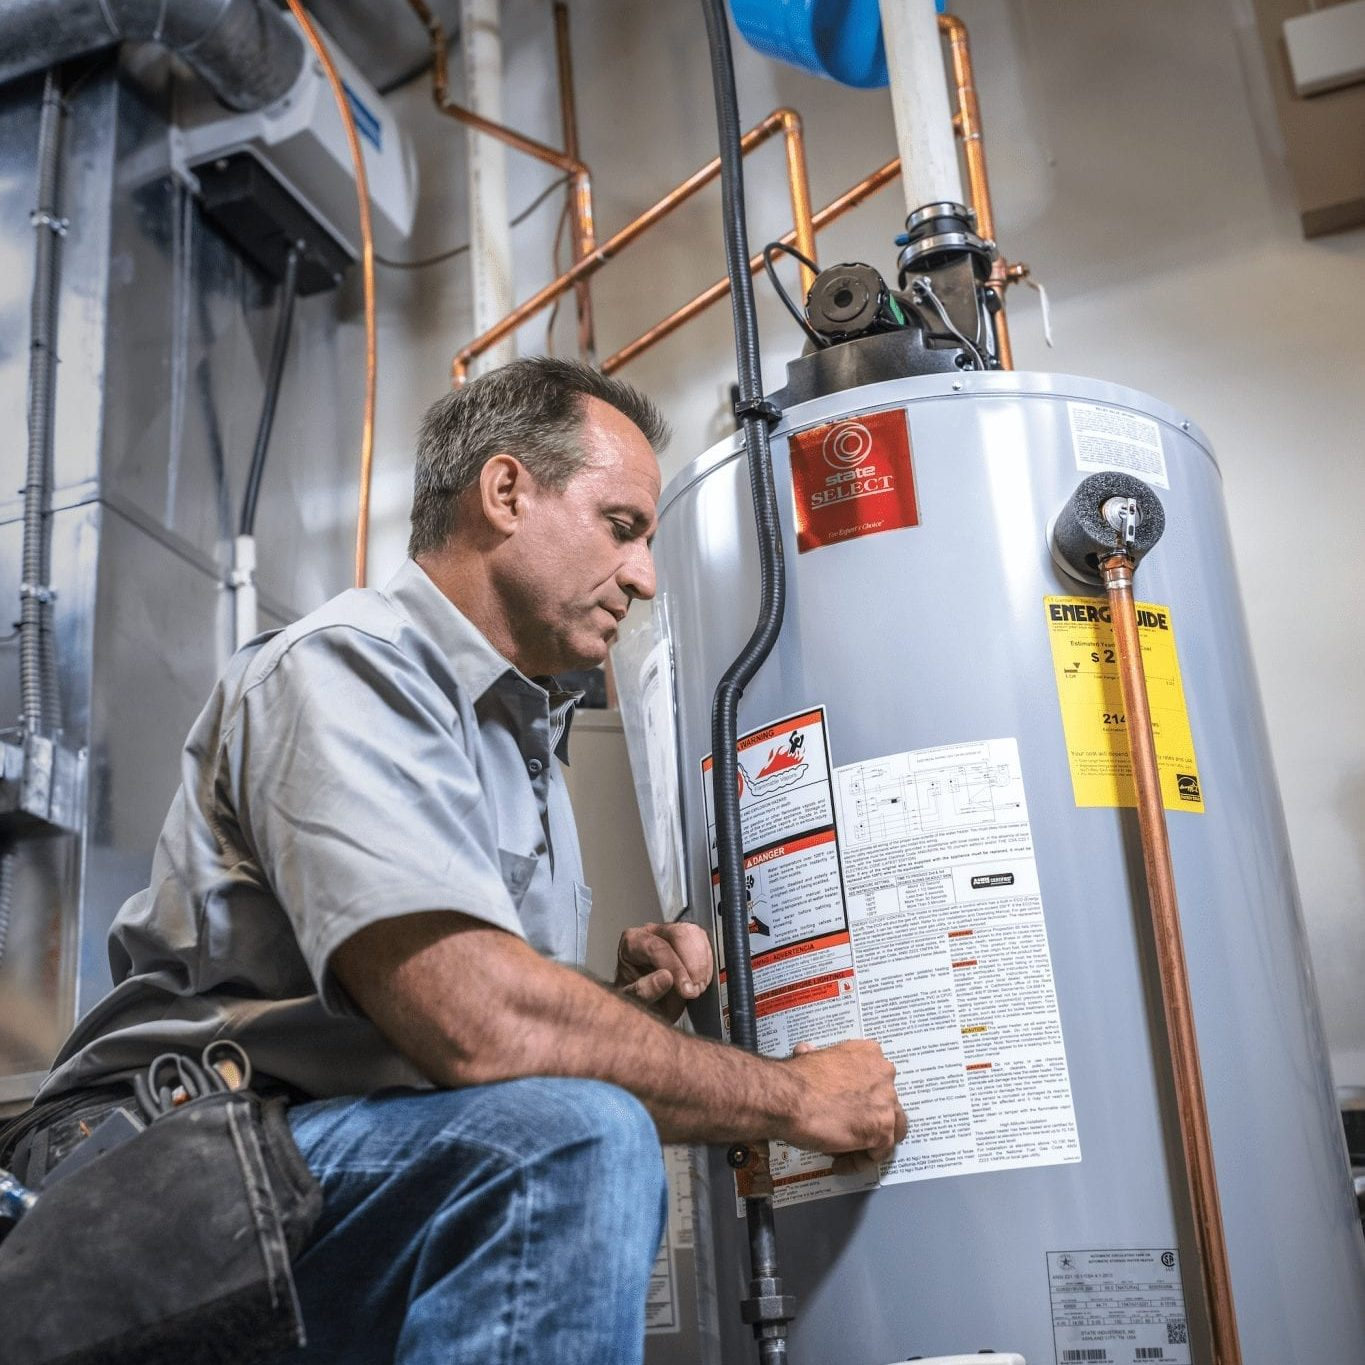 man in work uniform working on water heater